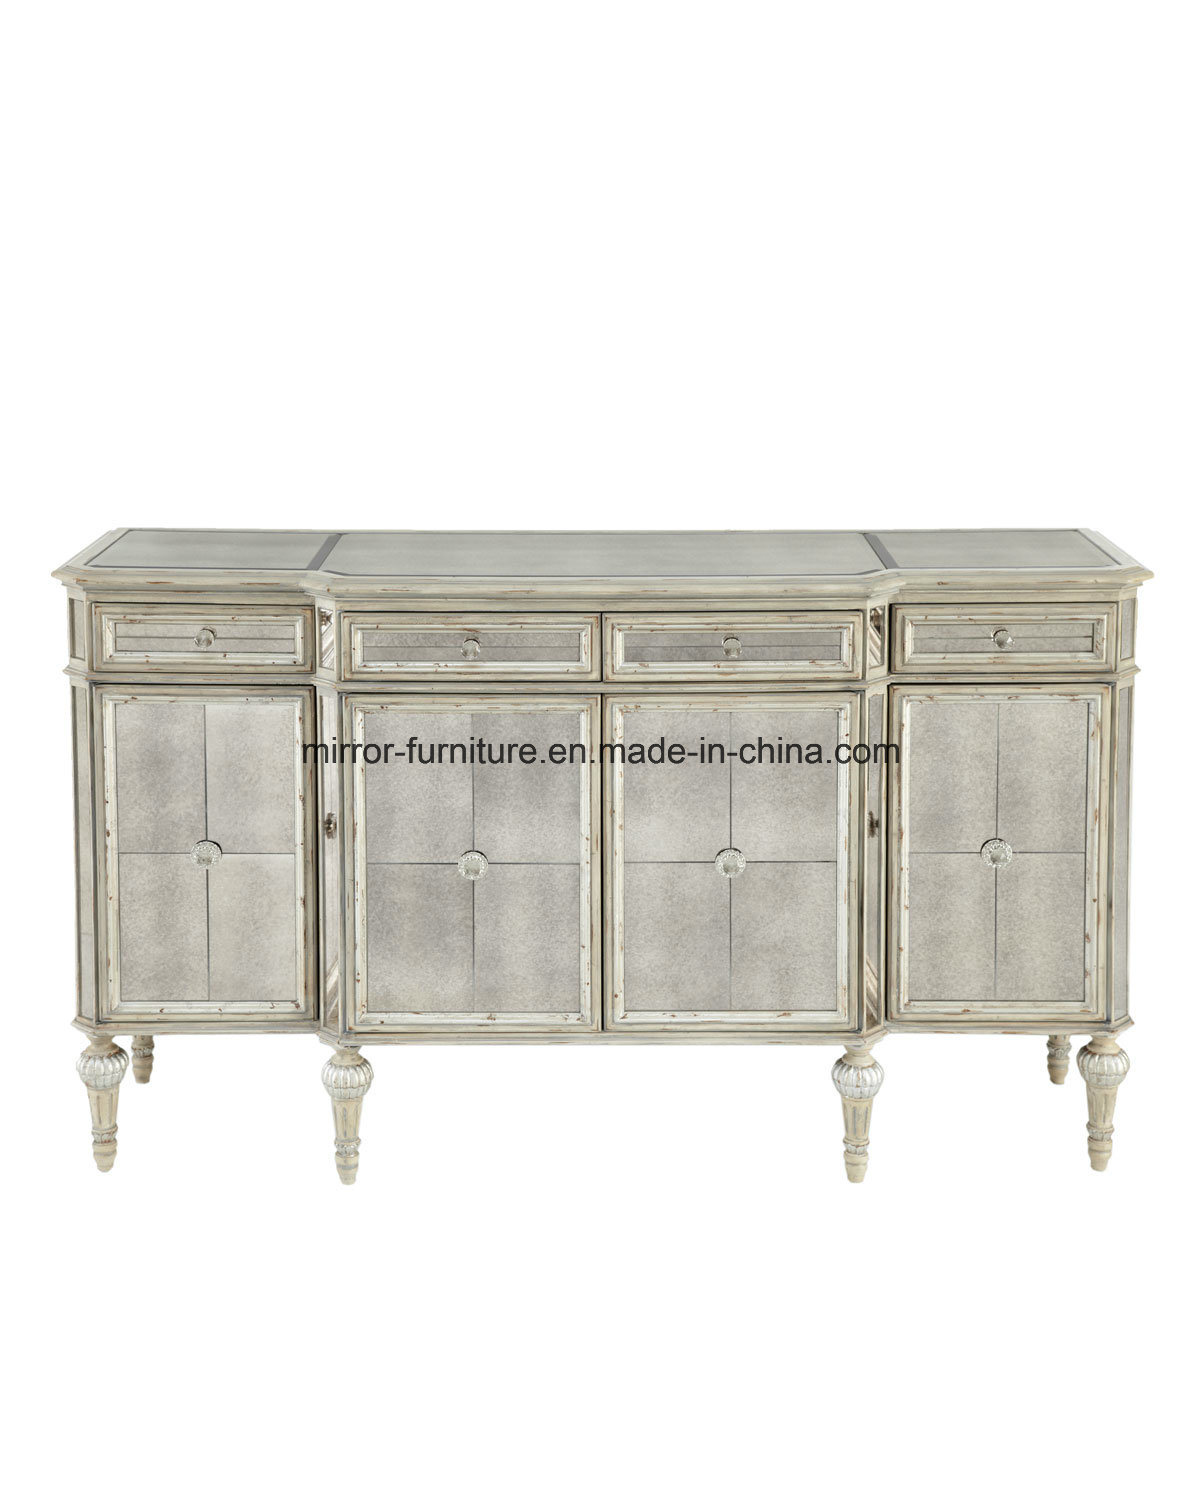 Living Room Antique Mirrored Furniture with High Quality